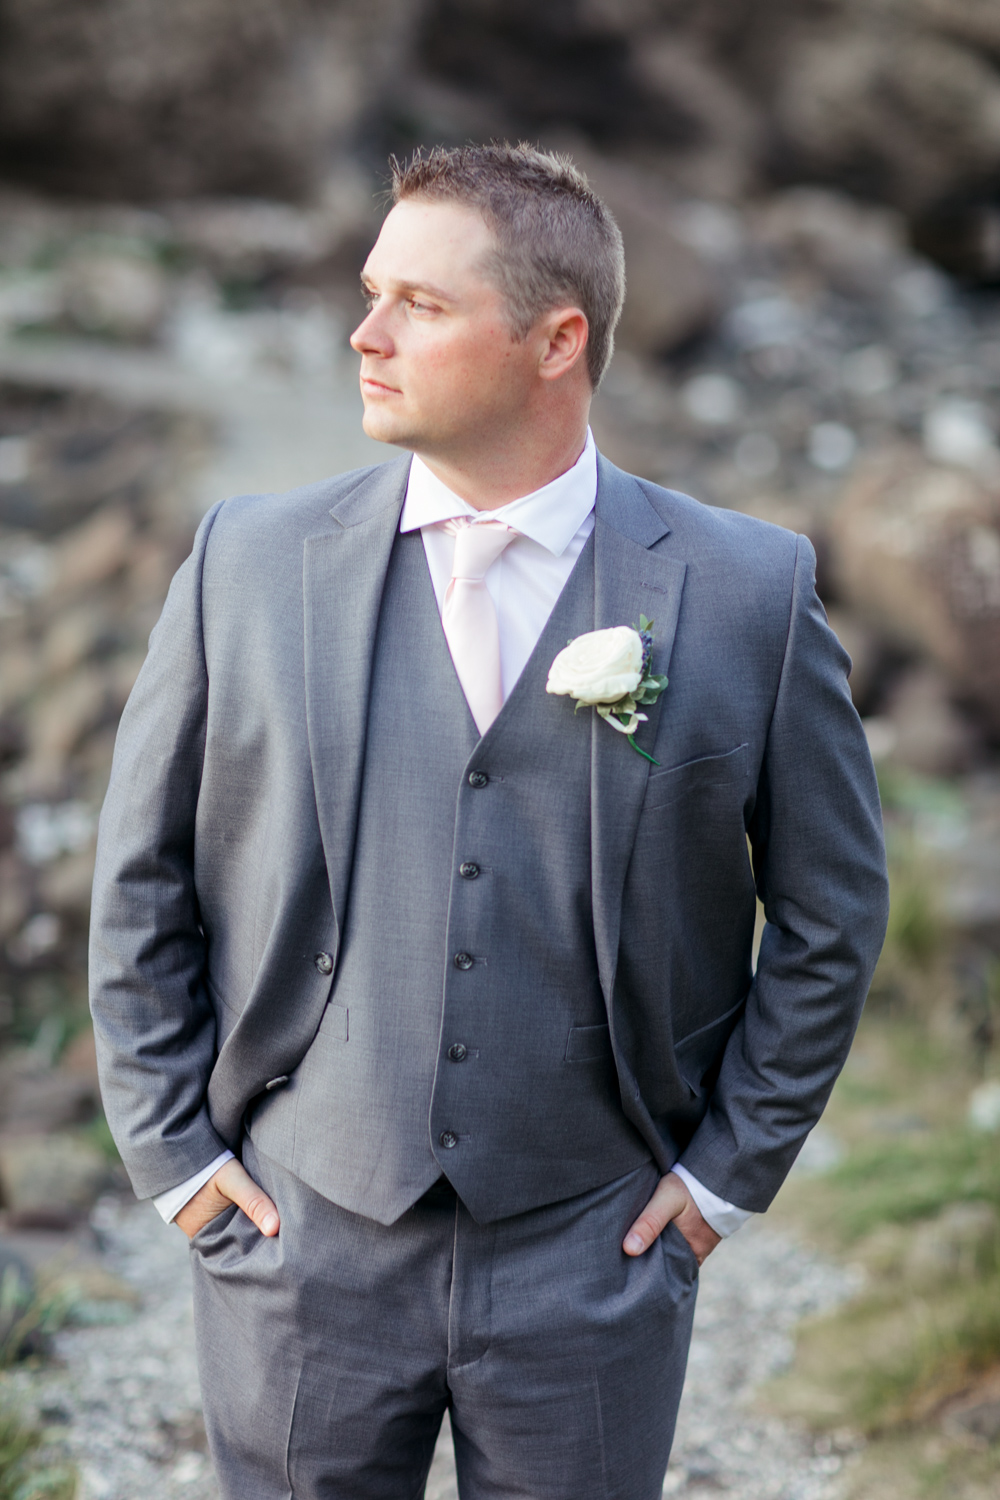 men's wedding suit grey with a pink tie and a rose buttonhole